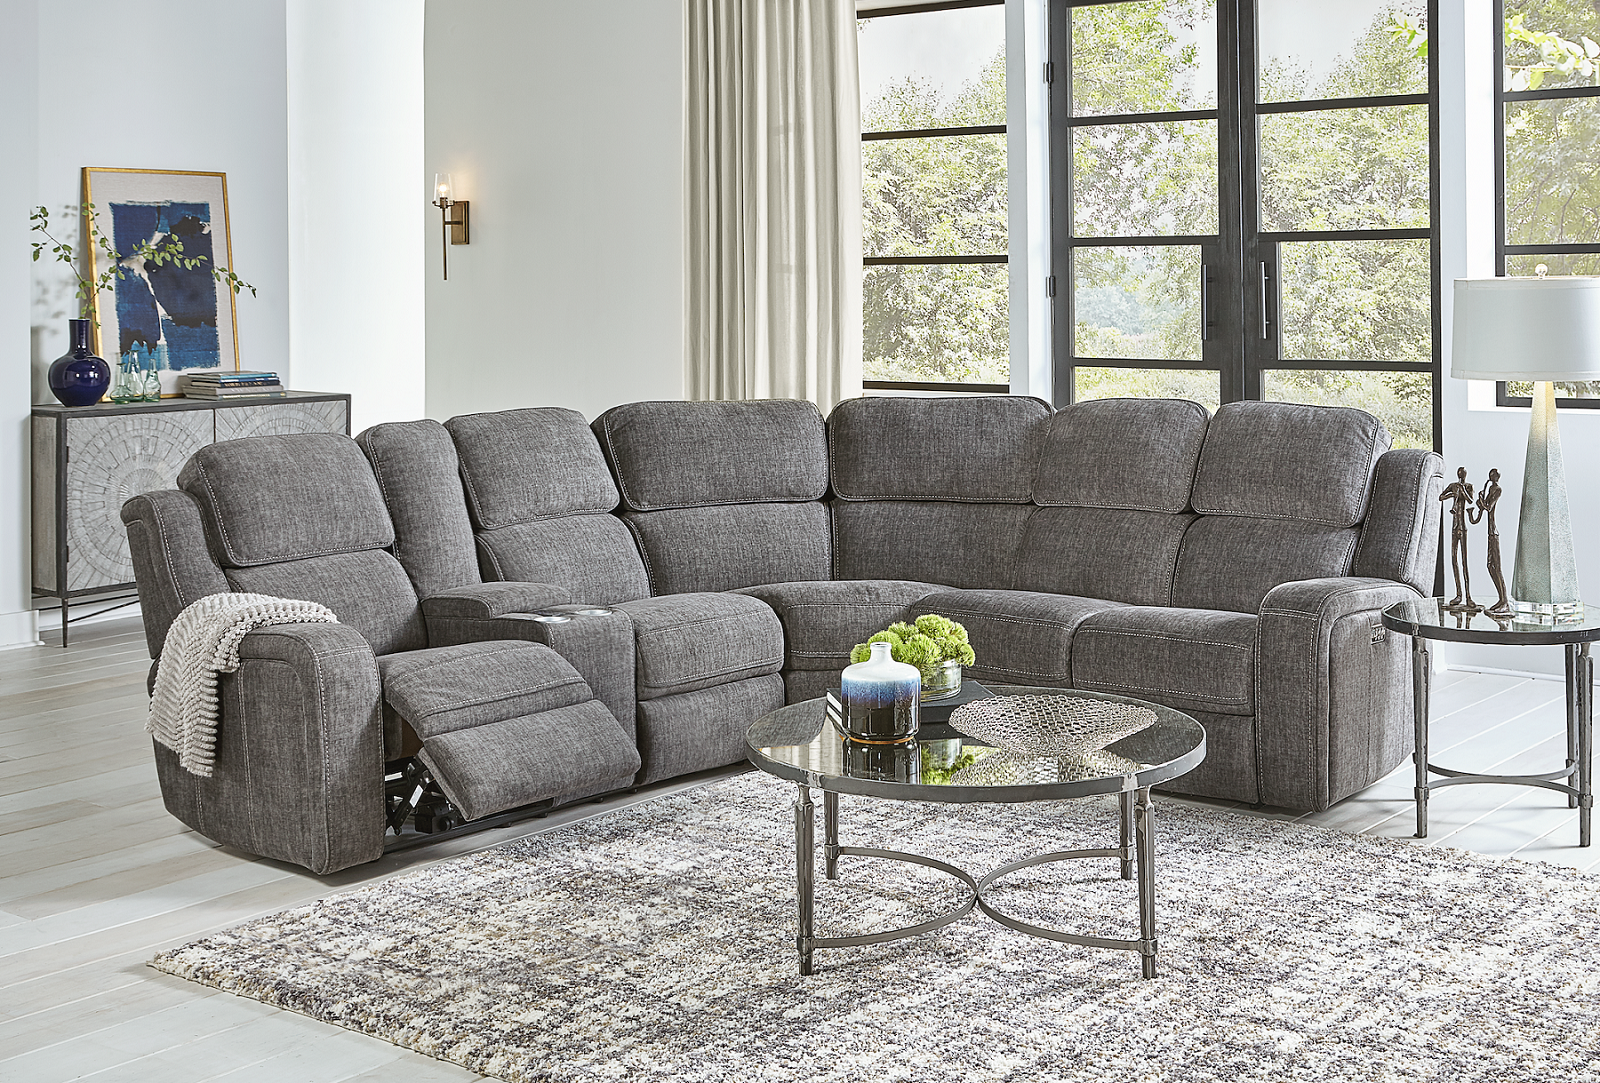 Naples Motion Sectional with Massage and more Image